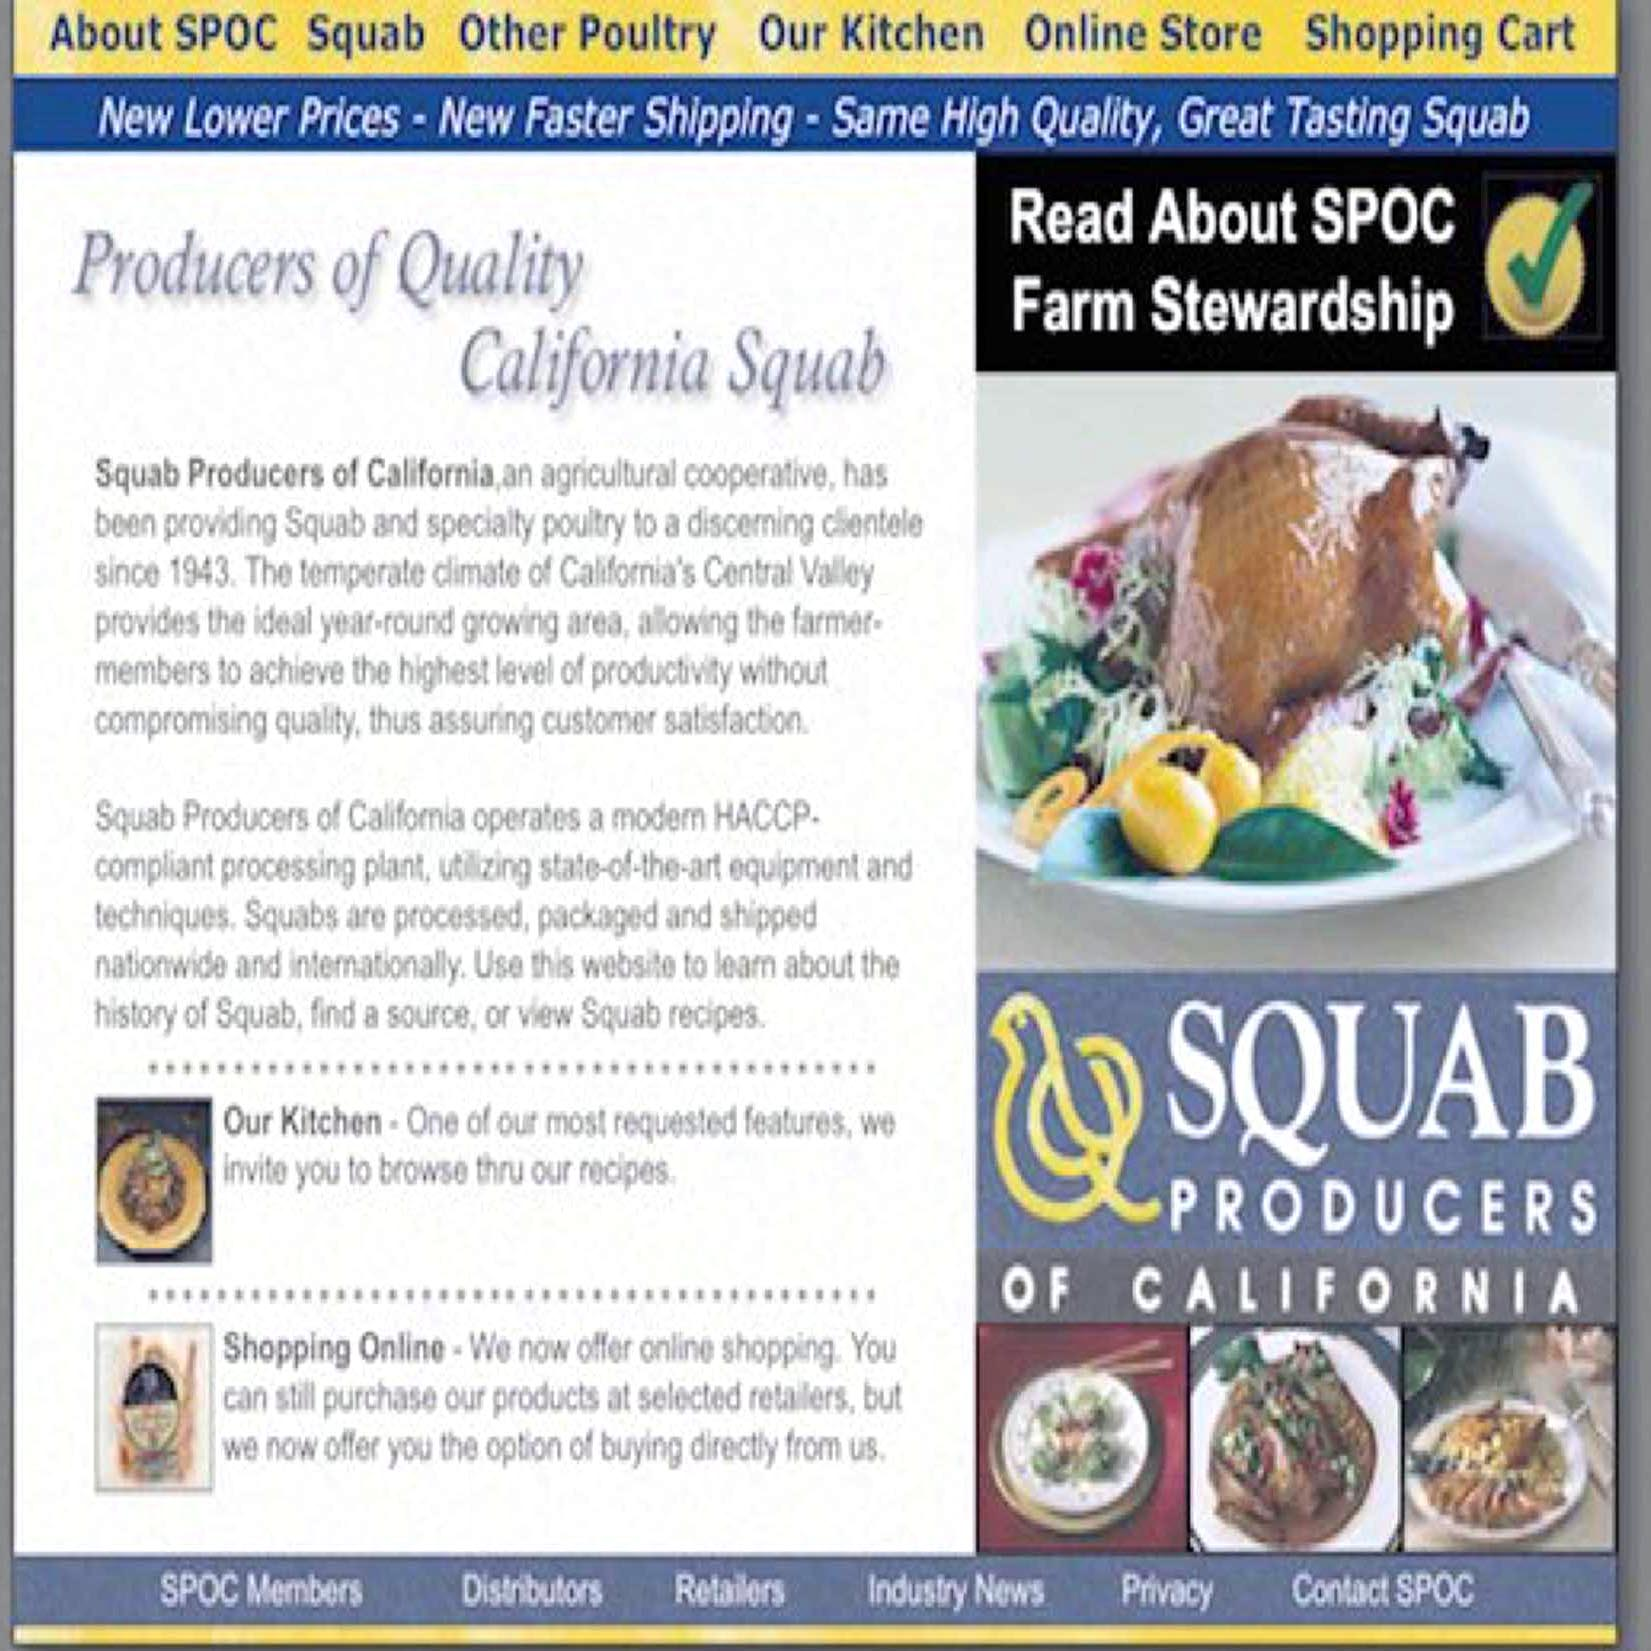 2005. SPOC launch first website, Squab.com